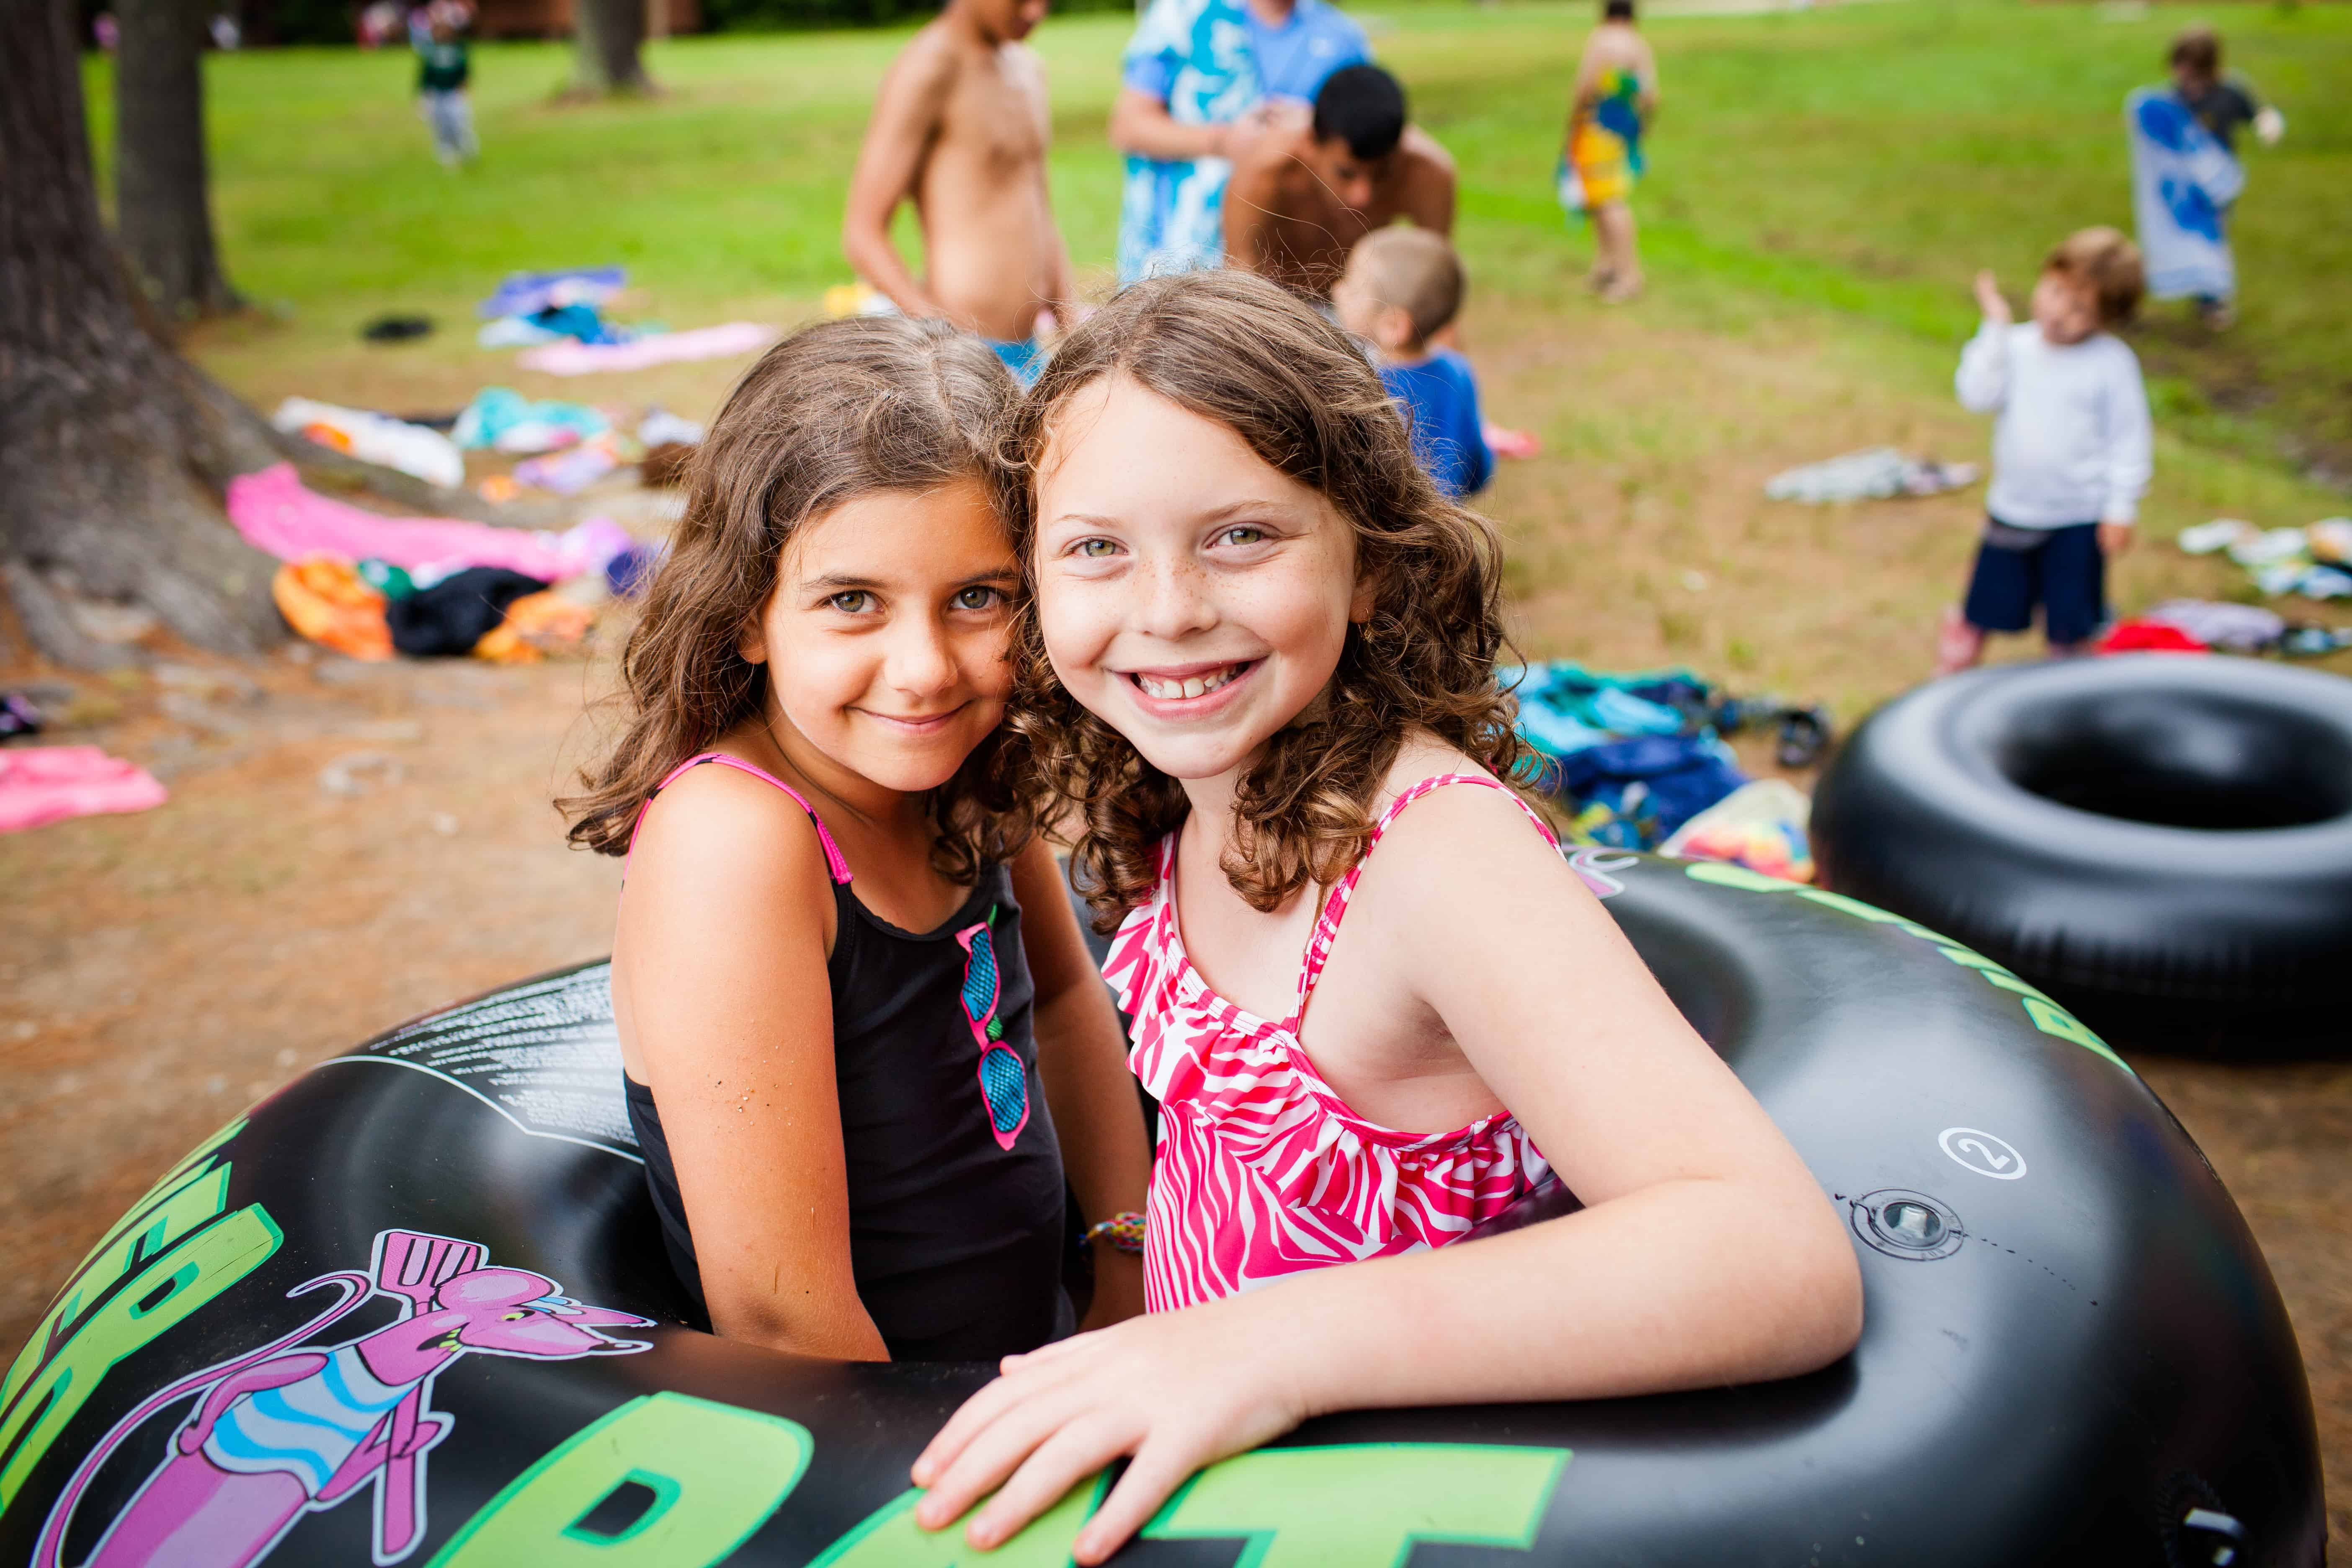 Mental Health, Wellbeing, & Thriving at Camp - Foundation